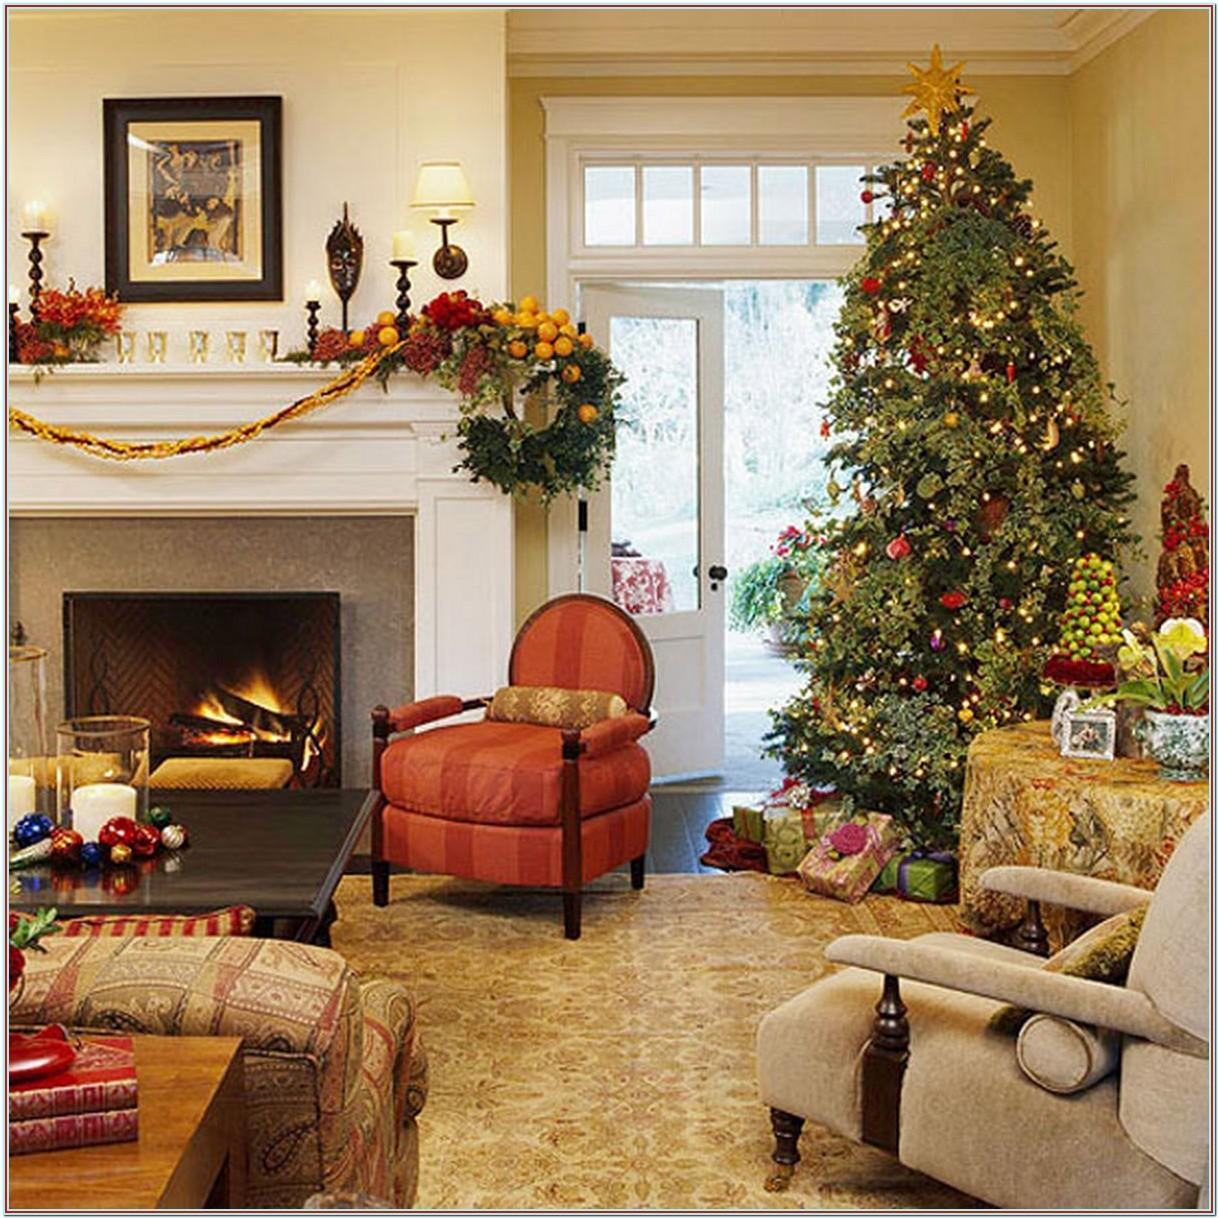 Decorating Ideas Living Room For Christmas